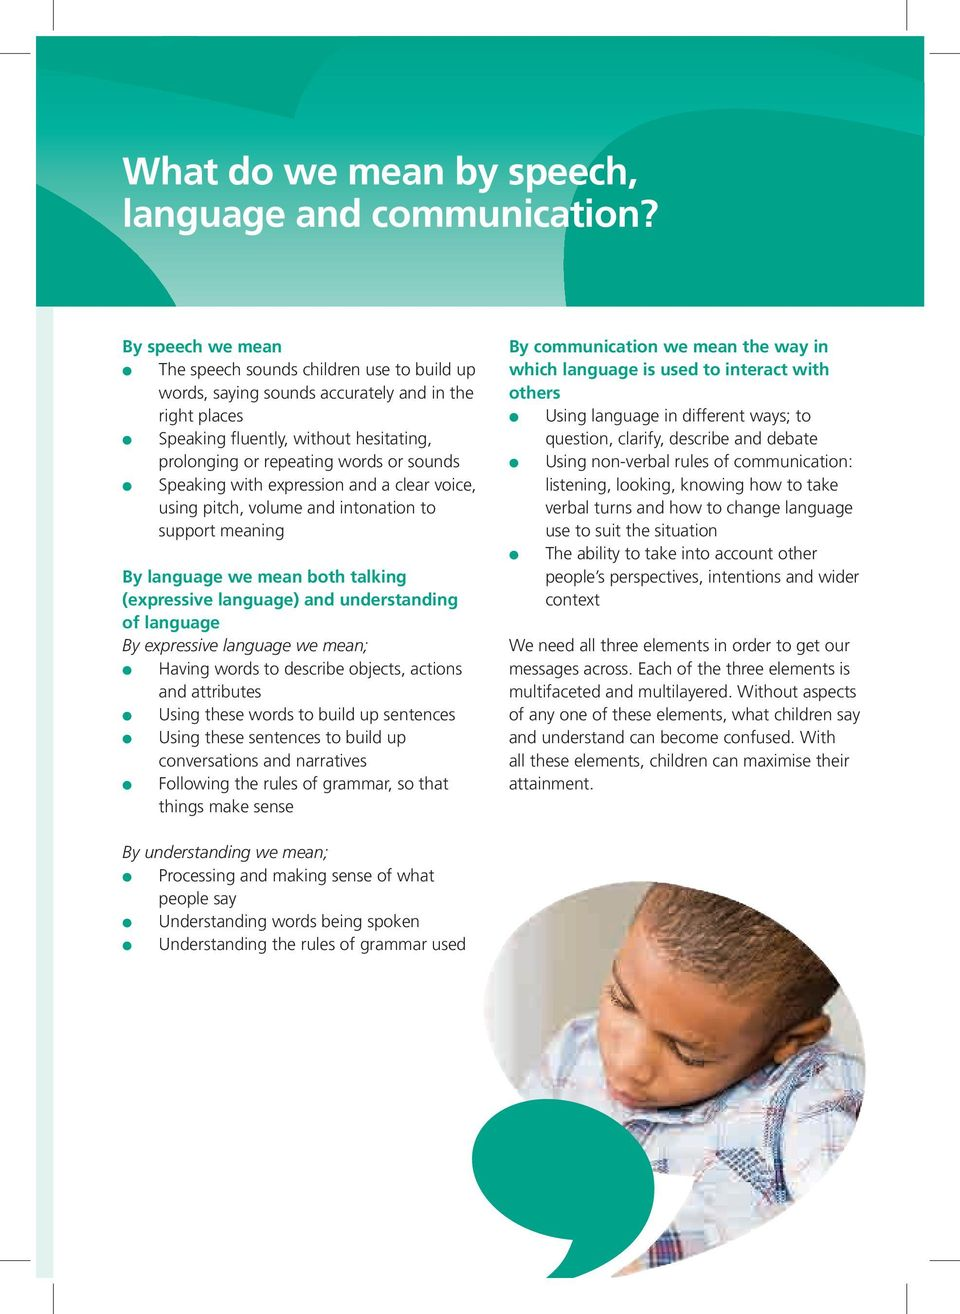 with expression and a cear voice, using pitch, voume and intonation to support meaning By anguage we mean both taking (expressive anguage) and understanding of anguage By expressive anguage we mean;